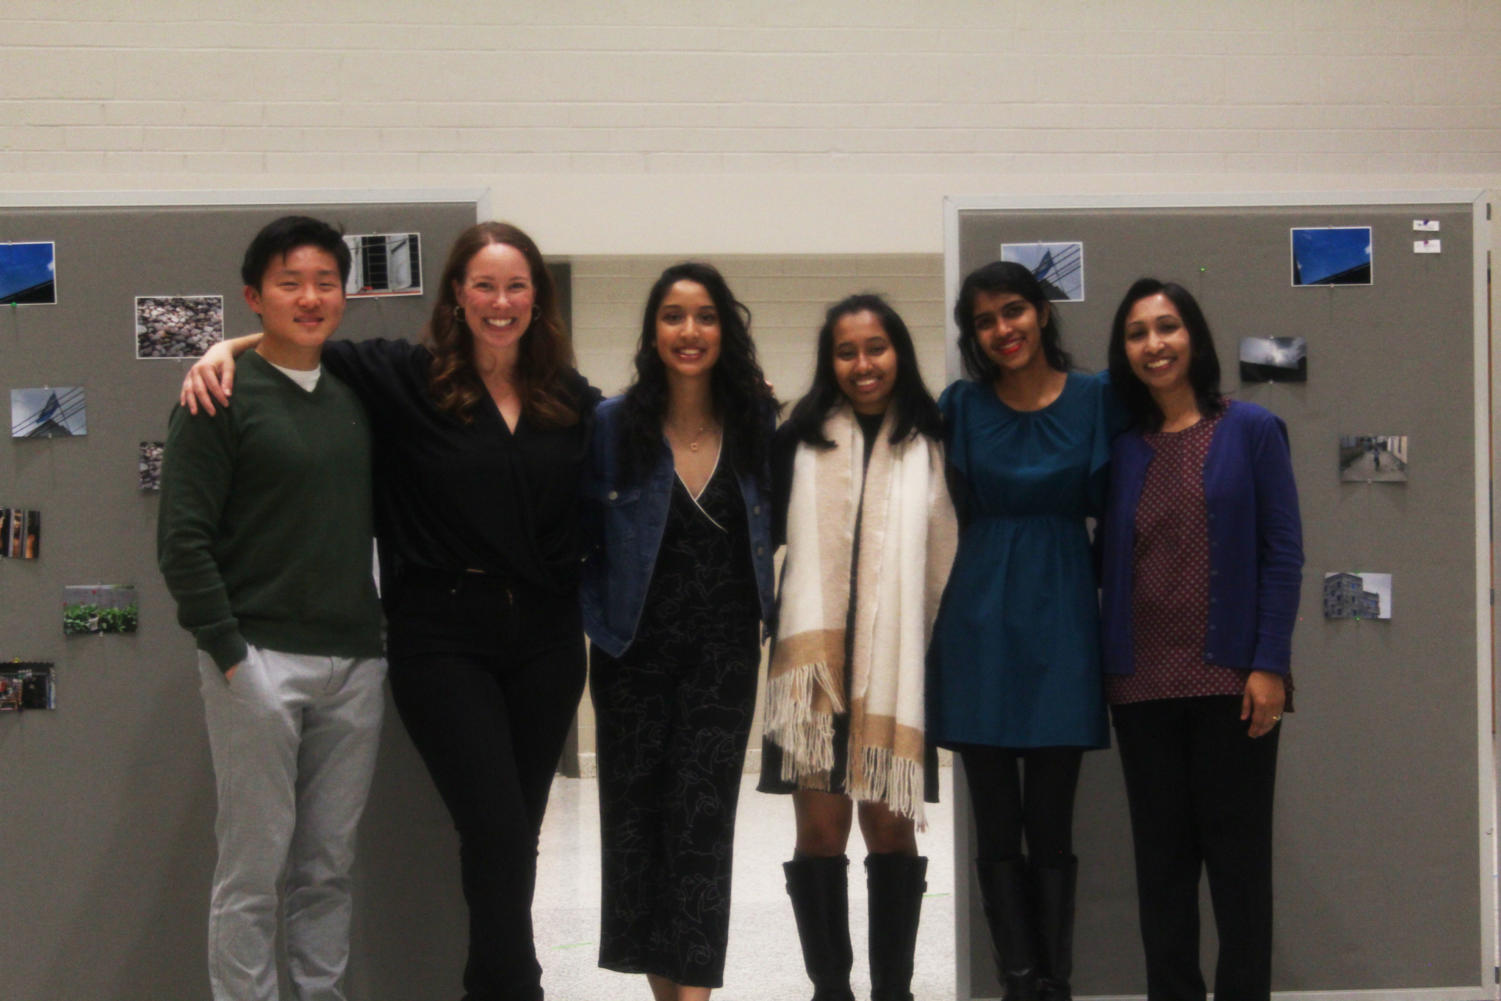 Leaders of the 100 Cameras Snapshot Dhaka Project gathered at their gallery opening at Langley. Left to right: Andrew Kim (Thomas Jefferson Senior), Amanda Archibald (Langley Photo Teacher), Sumaiya Haque (Langley Senior), Mehran Sajjad (Thomas Jefferson Senior), and Ananya Amirthalingam (Langley Senior).